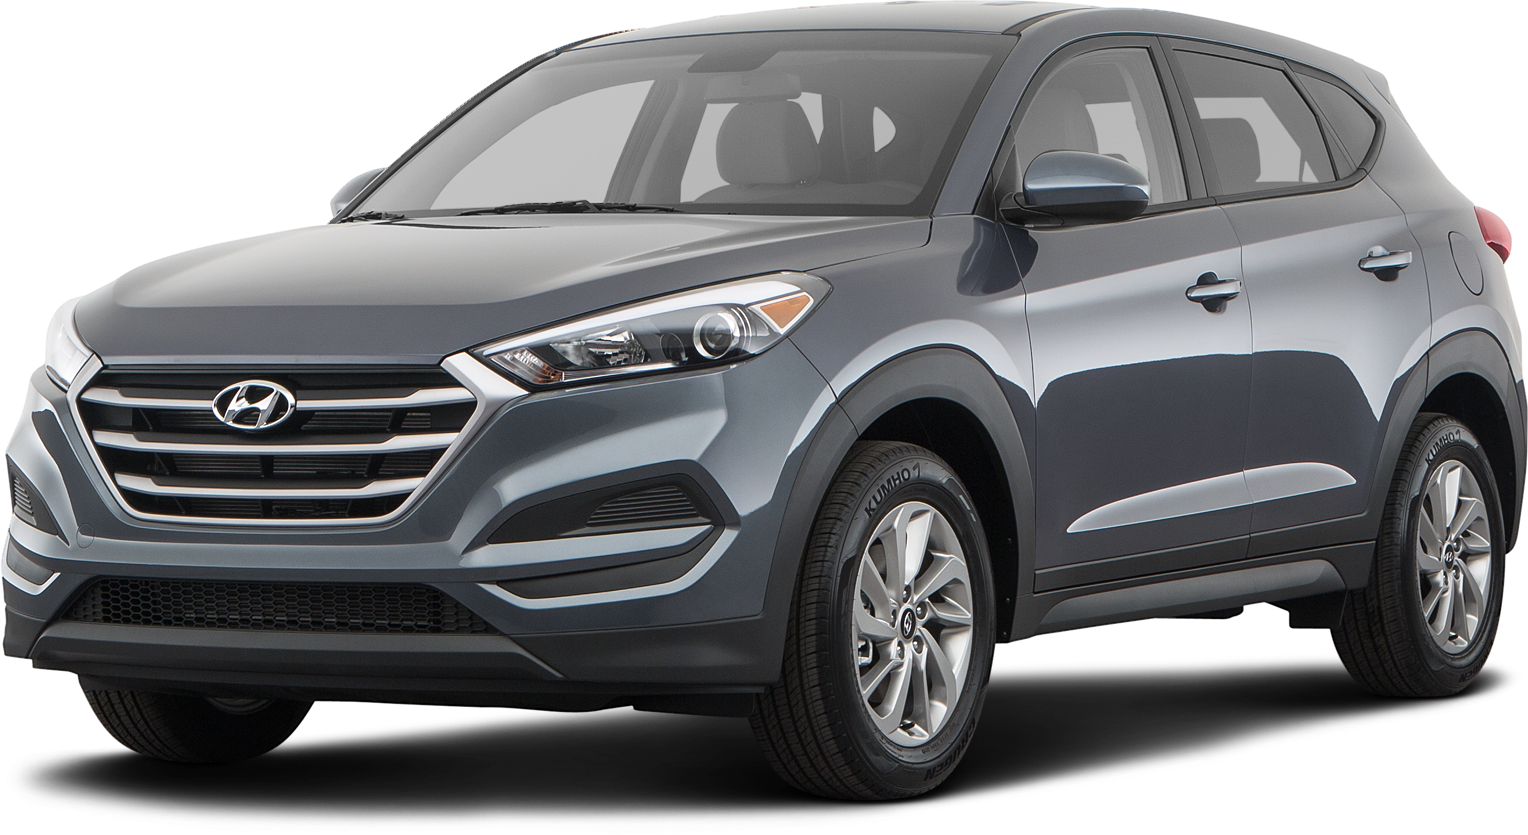 sonata monthly hyundai listings cargoura lease down